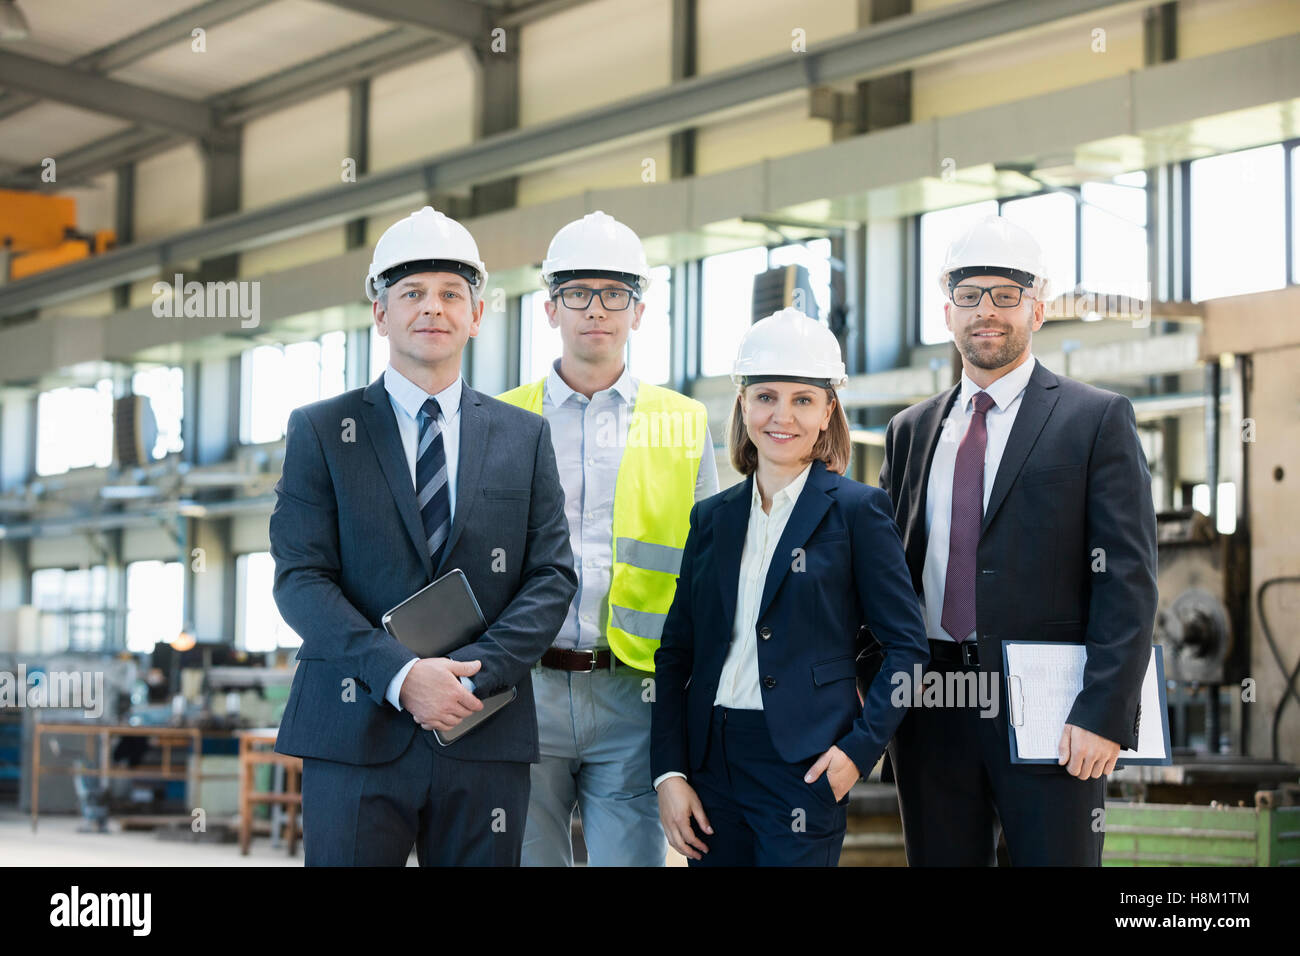 Portrait of confident business people wearing hardhats in metal industry - Stock Image